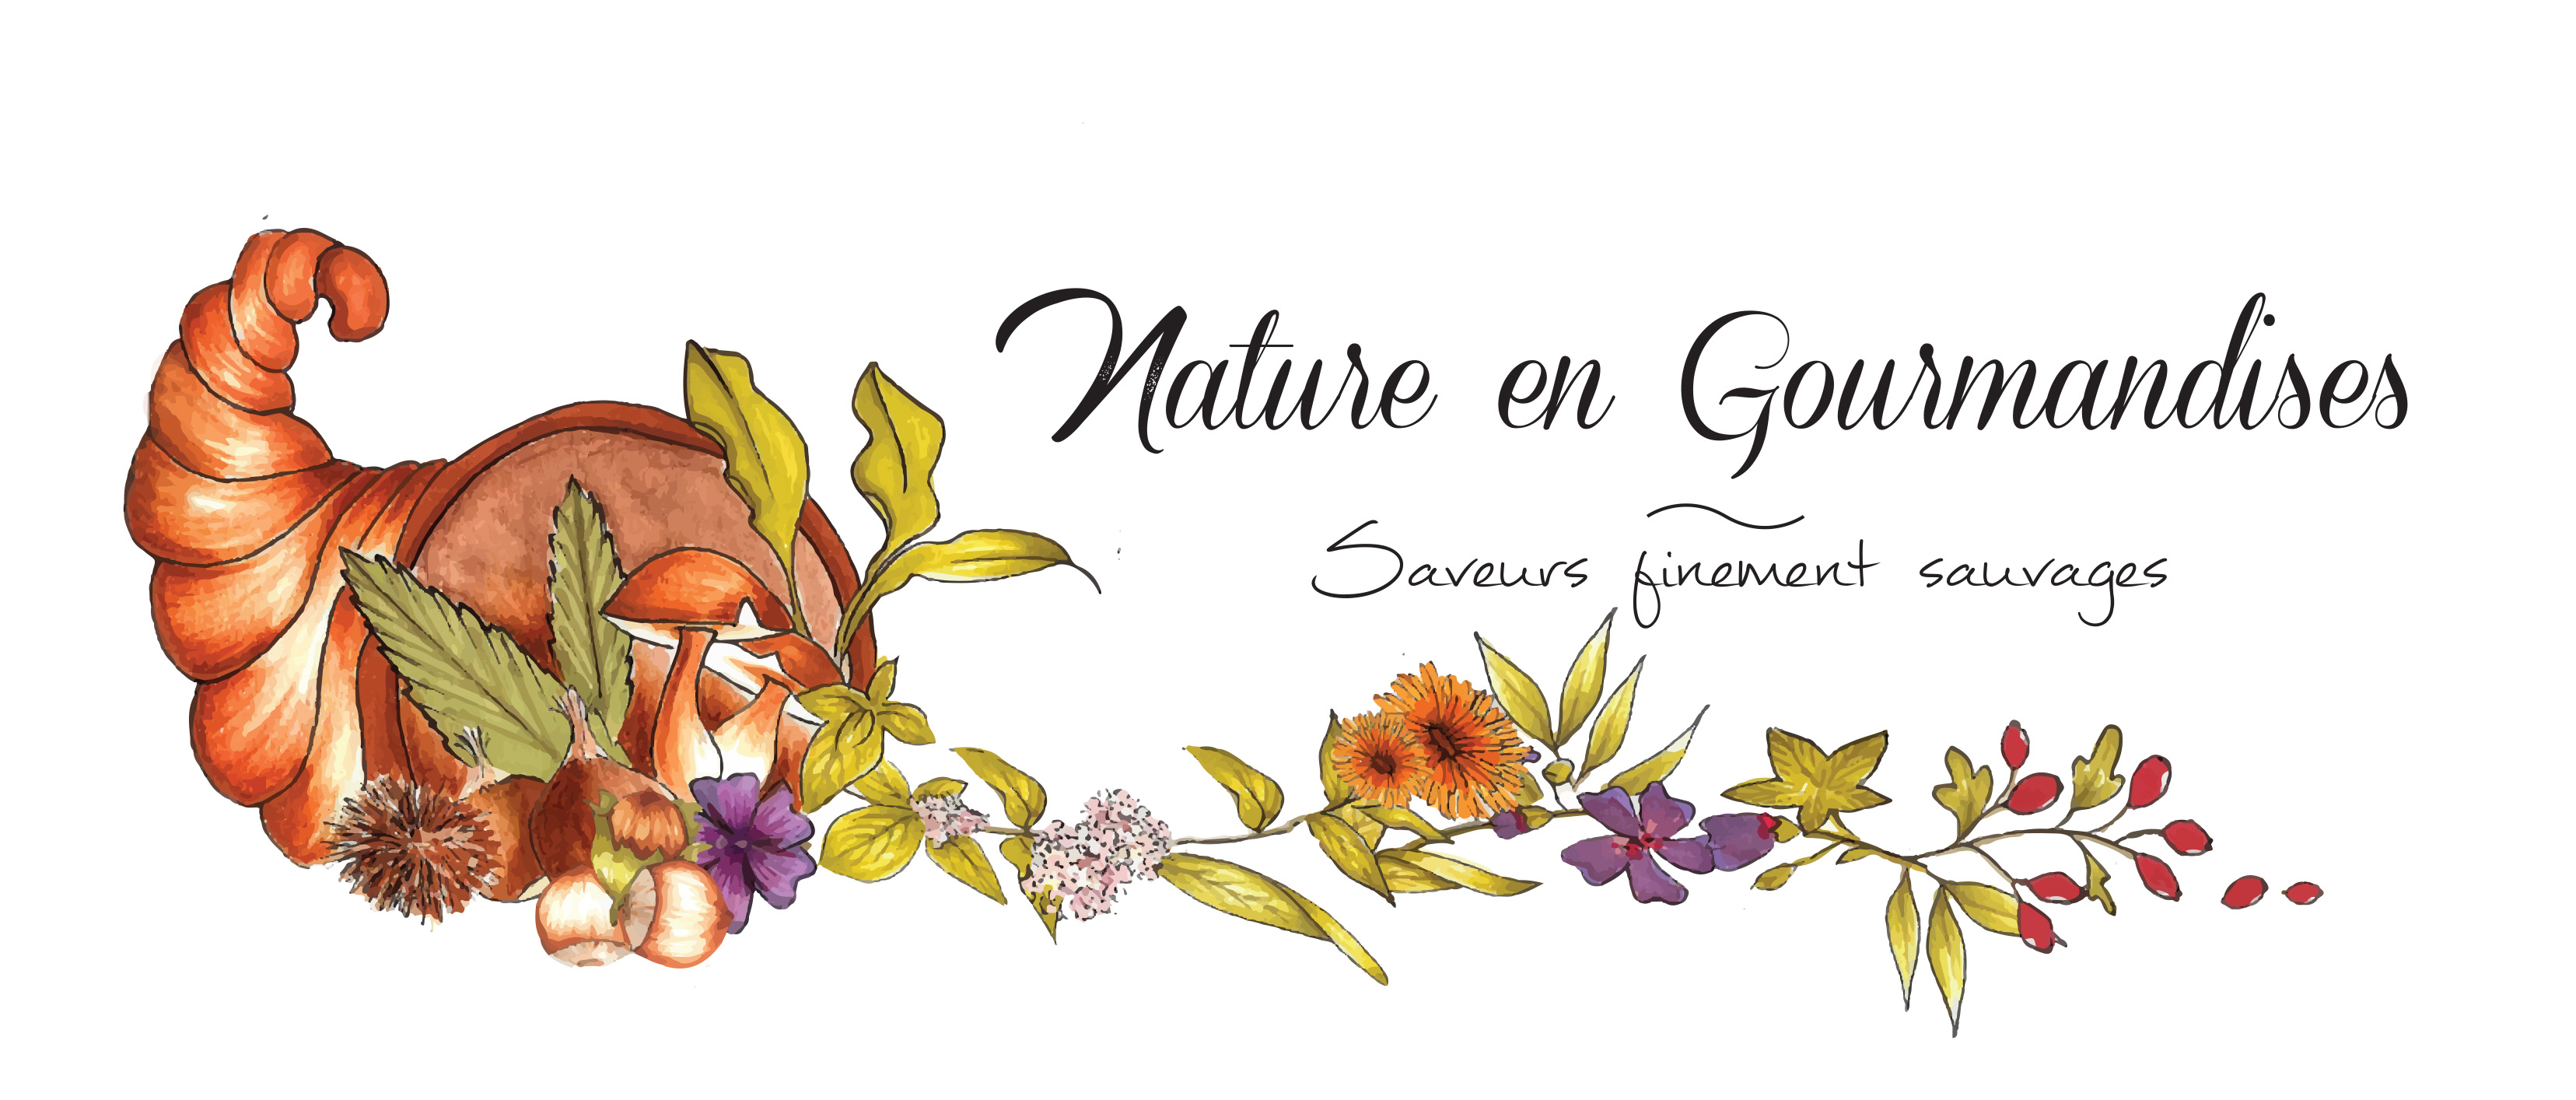 Nature en Gourmandises